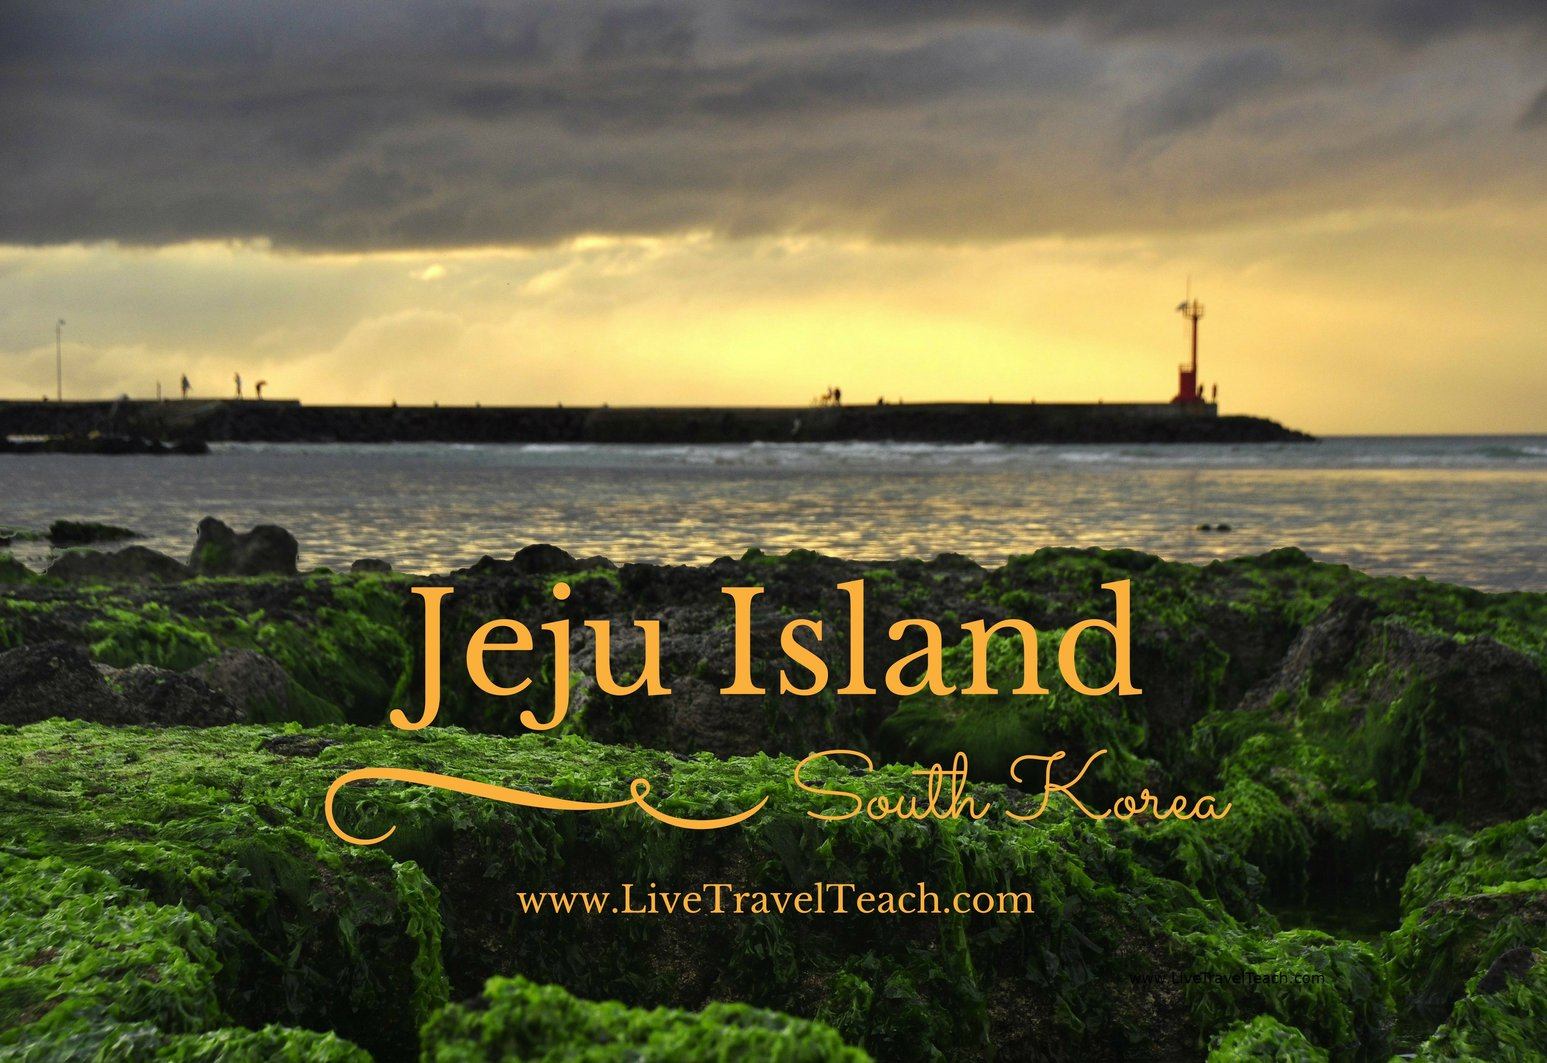 Top Things To Do In Jeju Island - 12 things to see and do in south korea